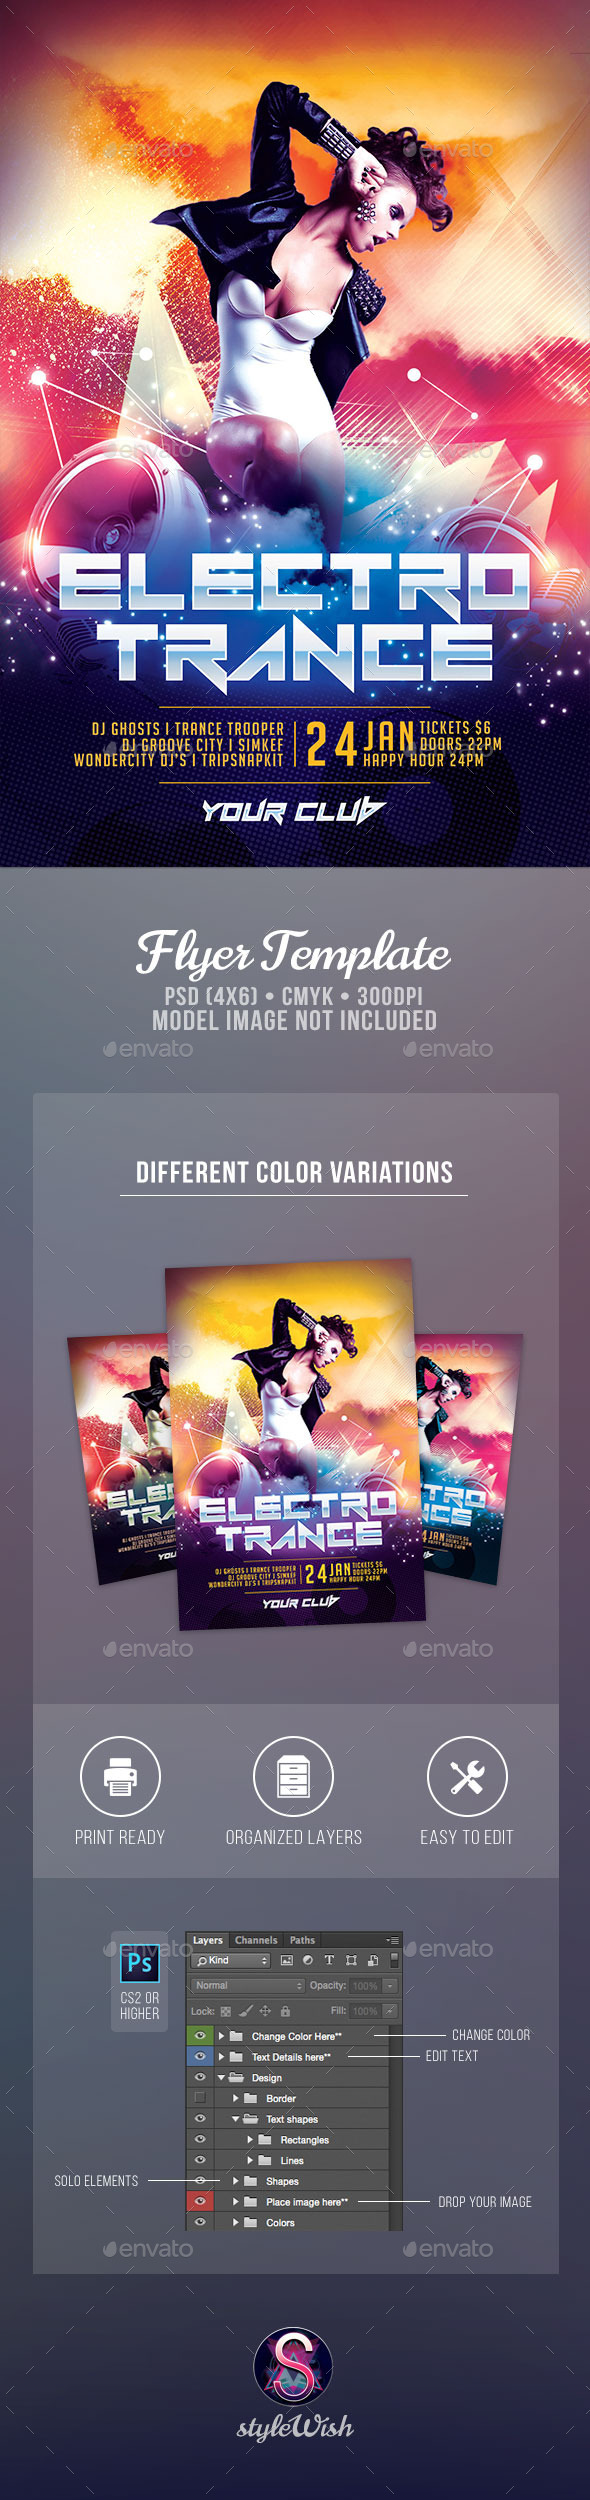 Electro Trance Flyer - Clubs & Parties Events